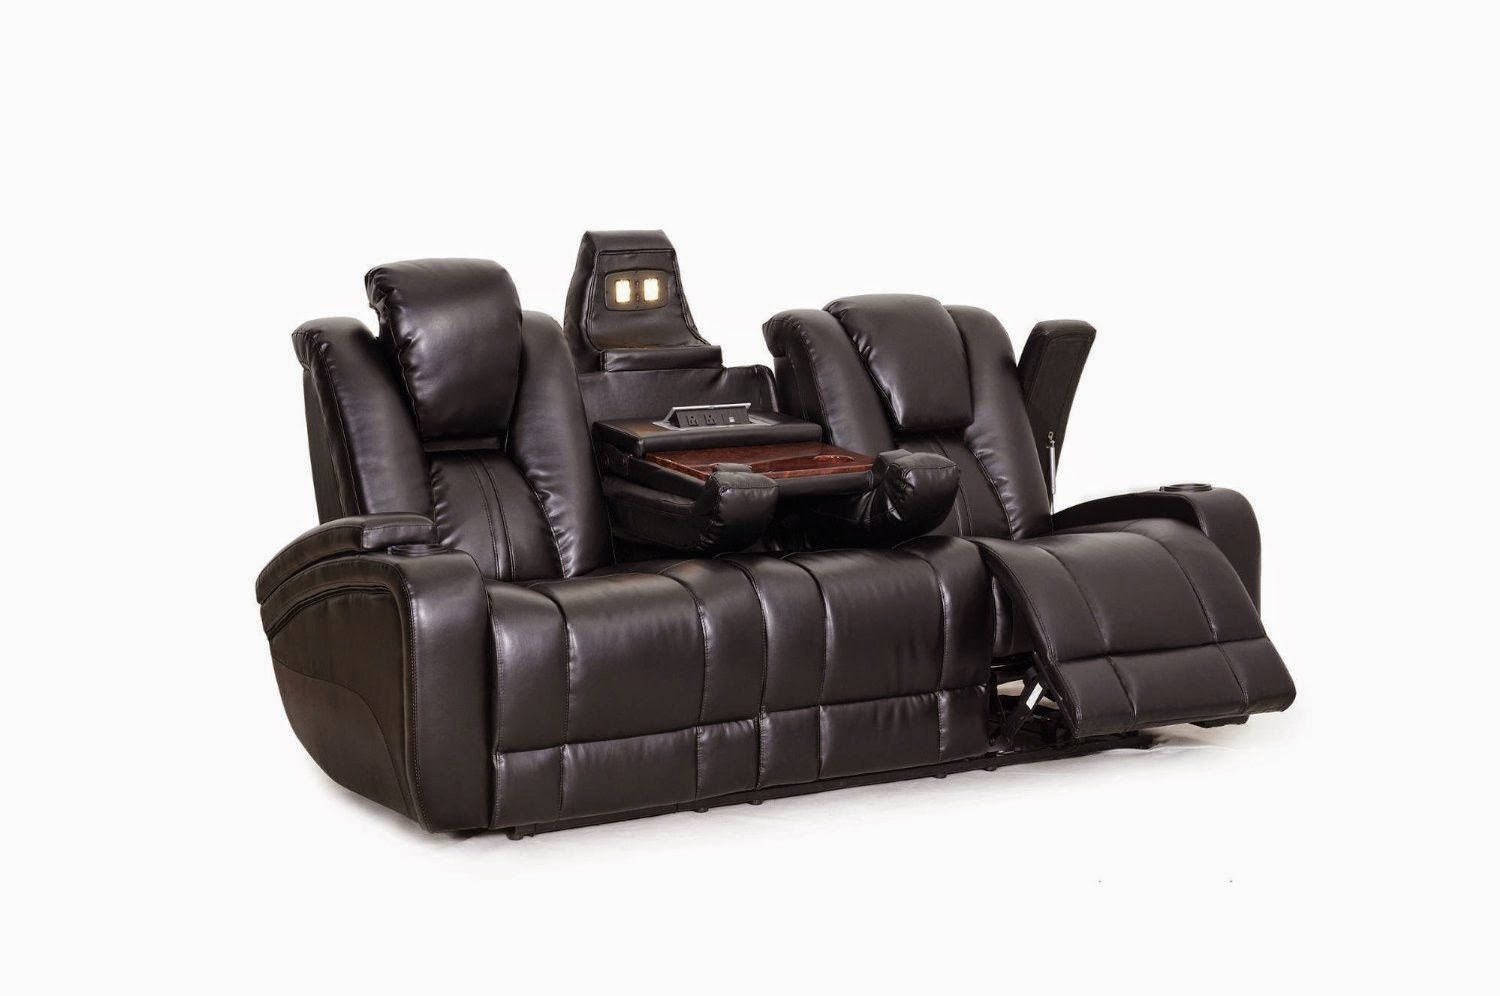 Cheap reclining sofas sale amalfi reclining leather sofa with drop down table and massage Loveseats that recline